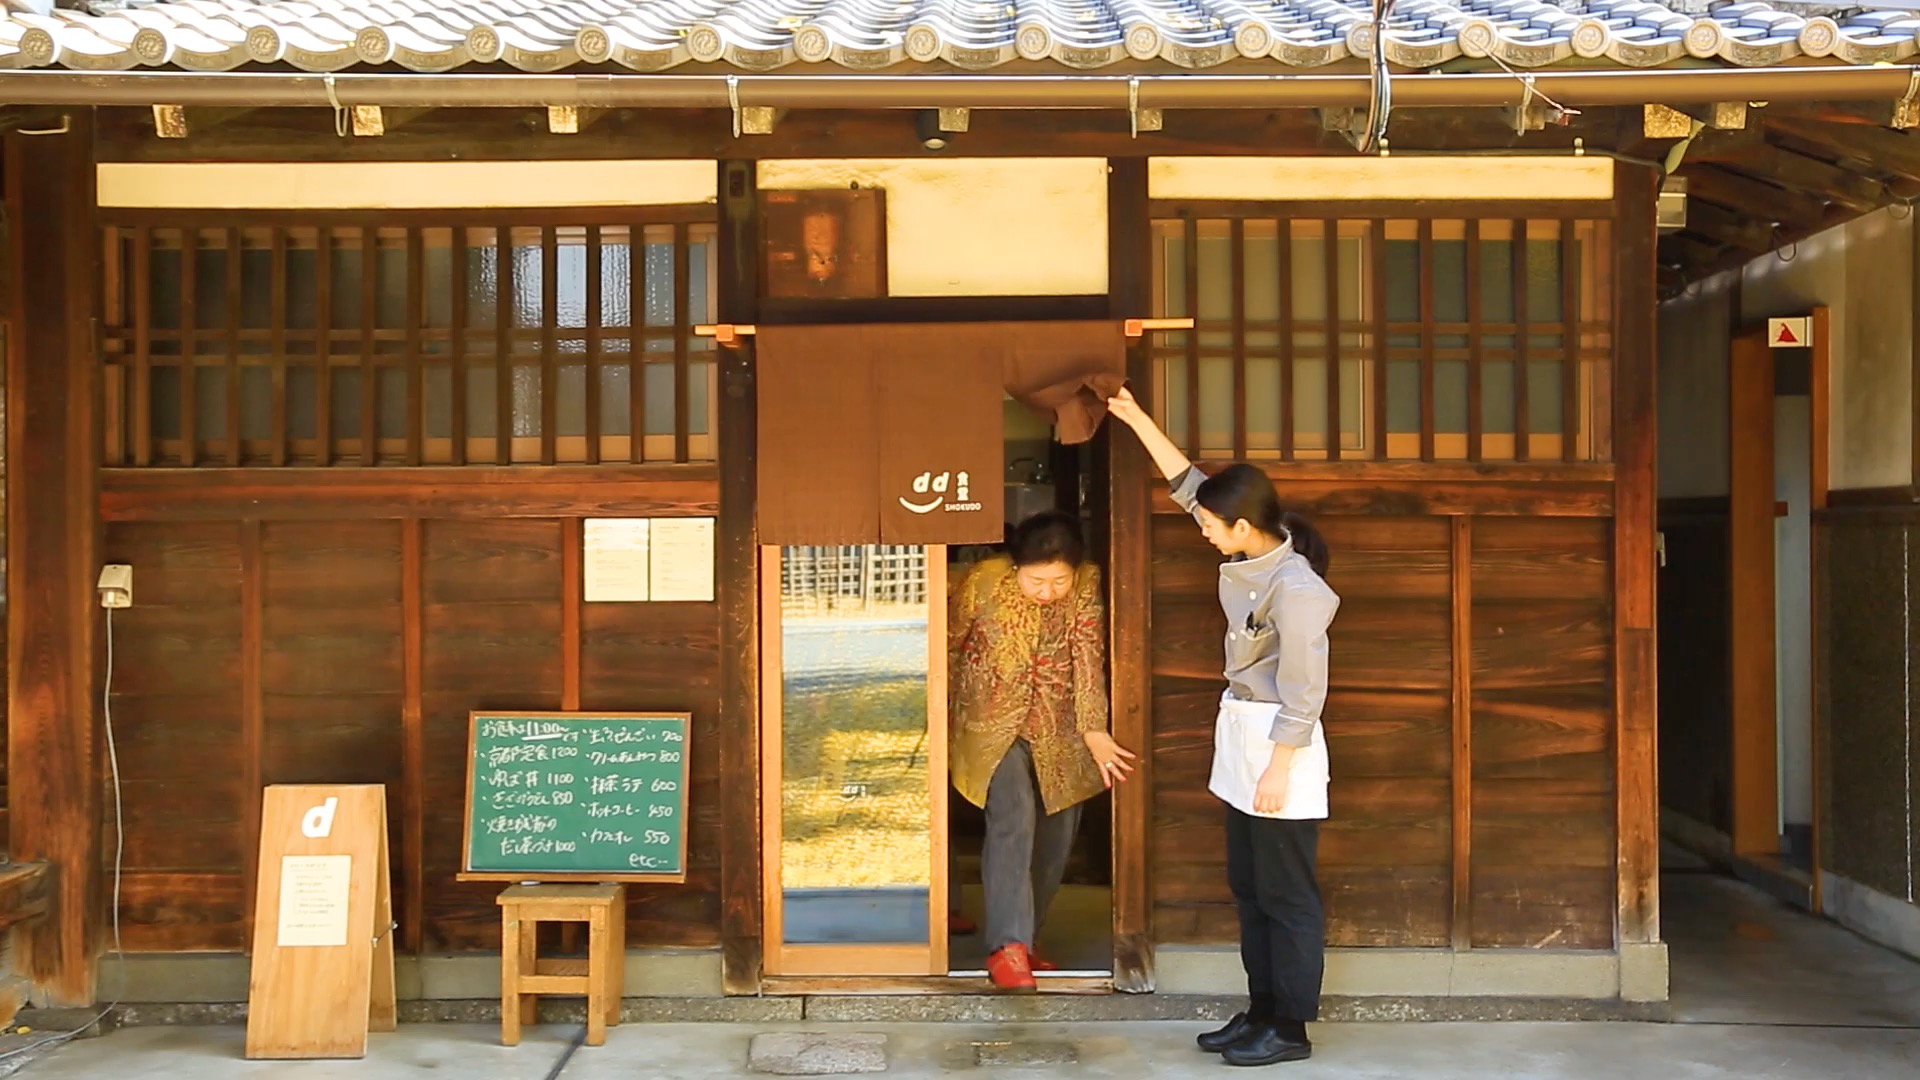 A day in Kyoto with Monocle: the top places to see - Film   Monocle